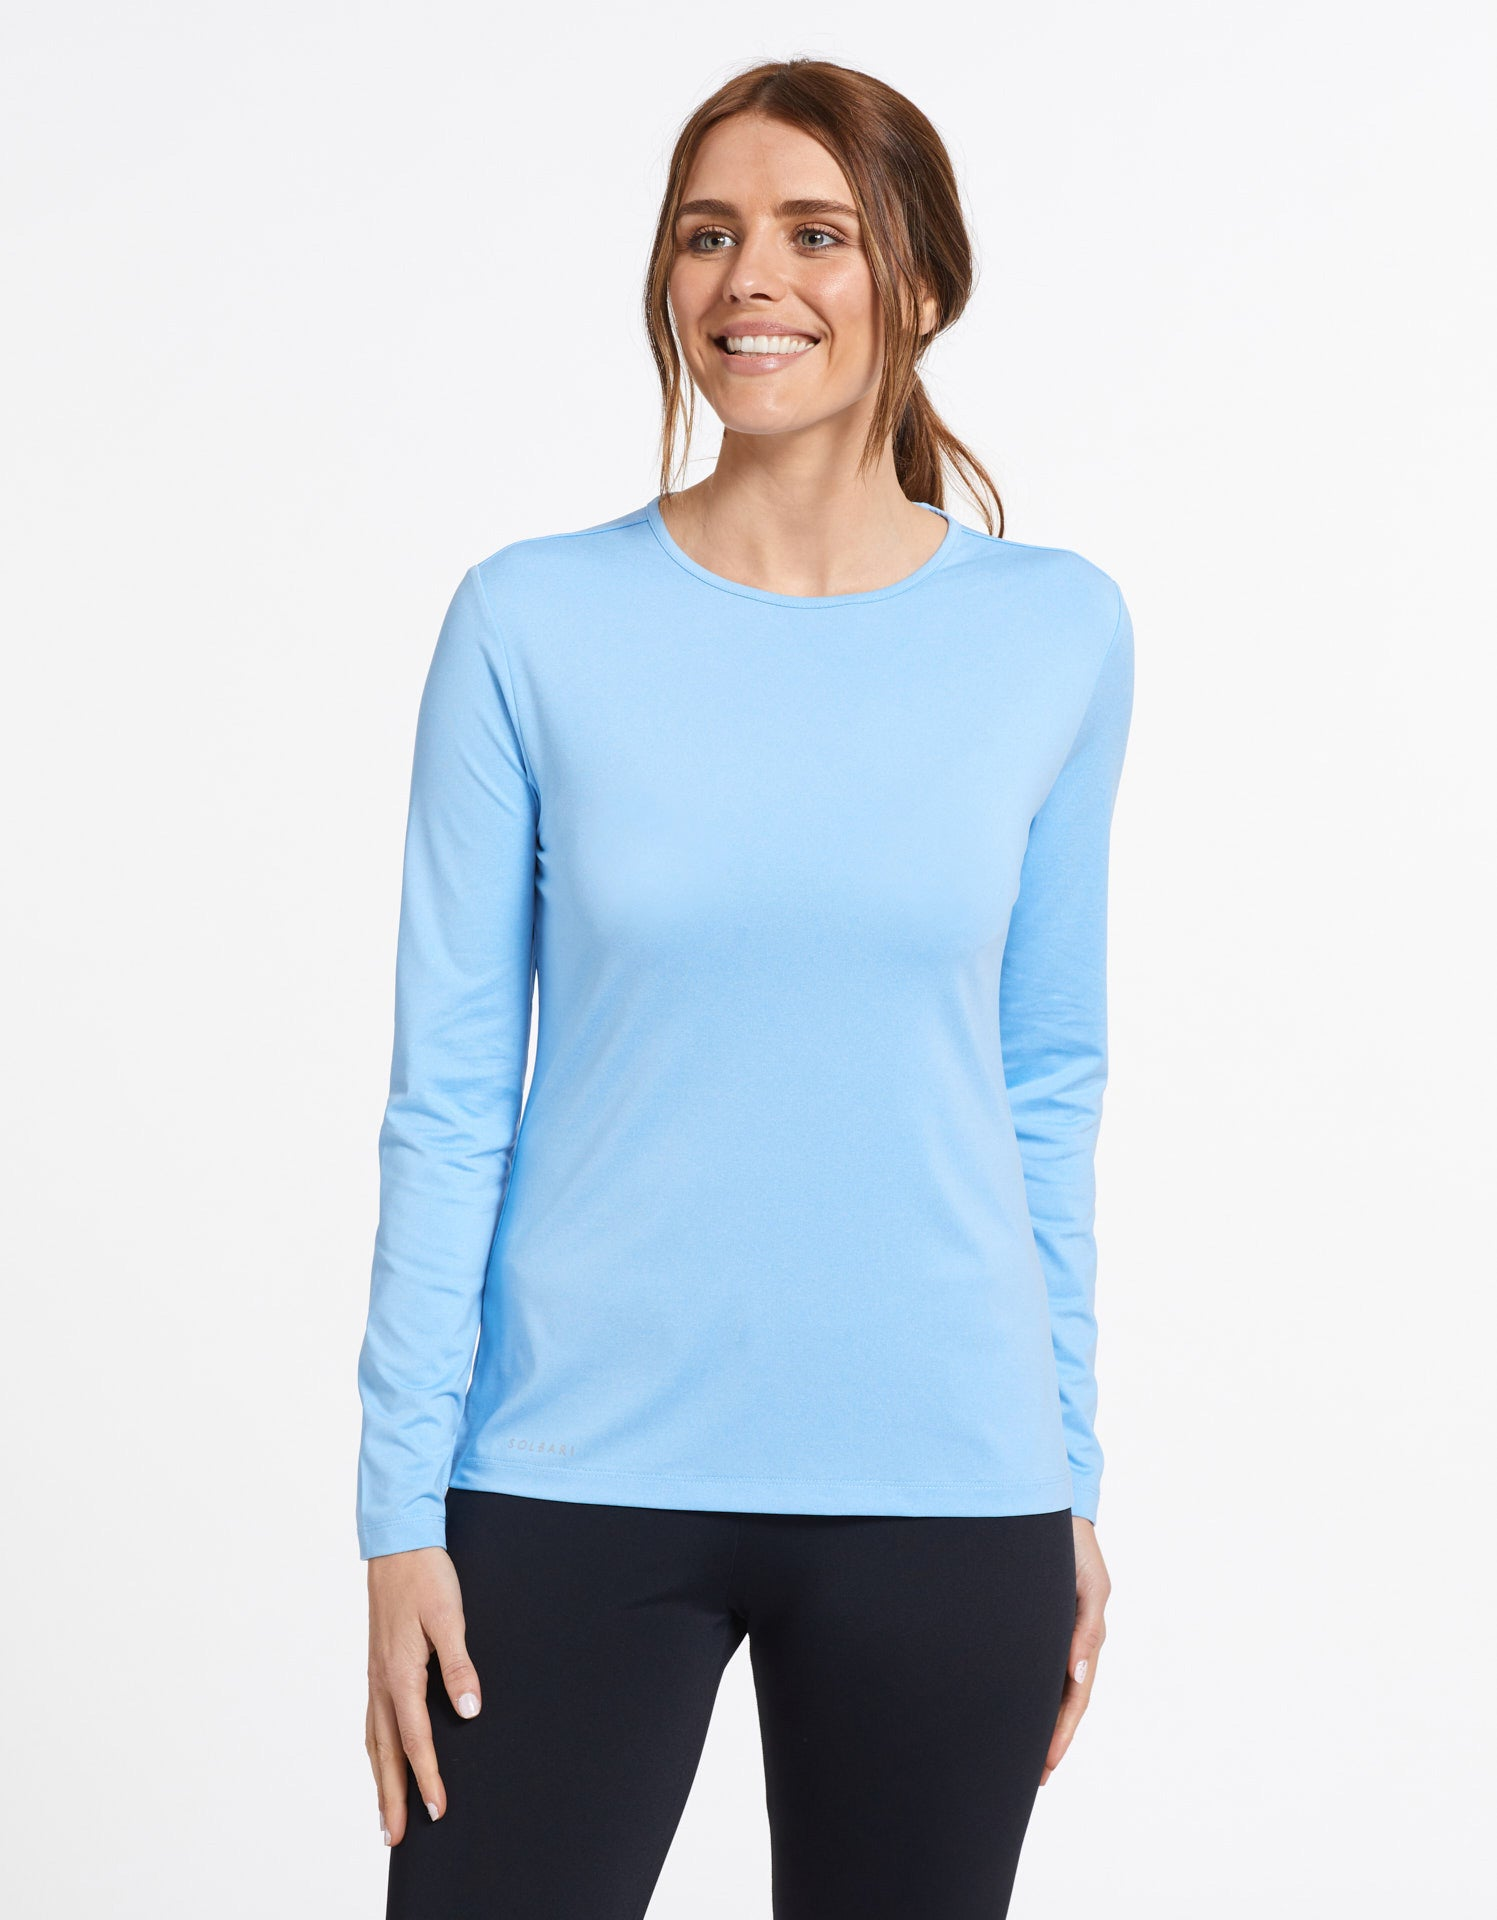 Solbari Sun Protection UPF50+ Women's Long Sleeve T-shirt Active Collection in Sky Blue